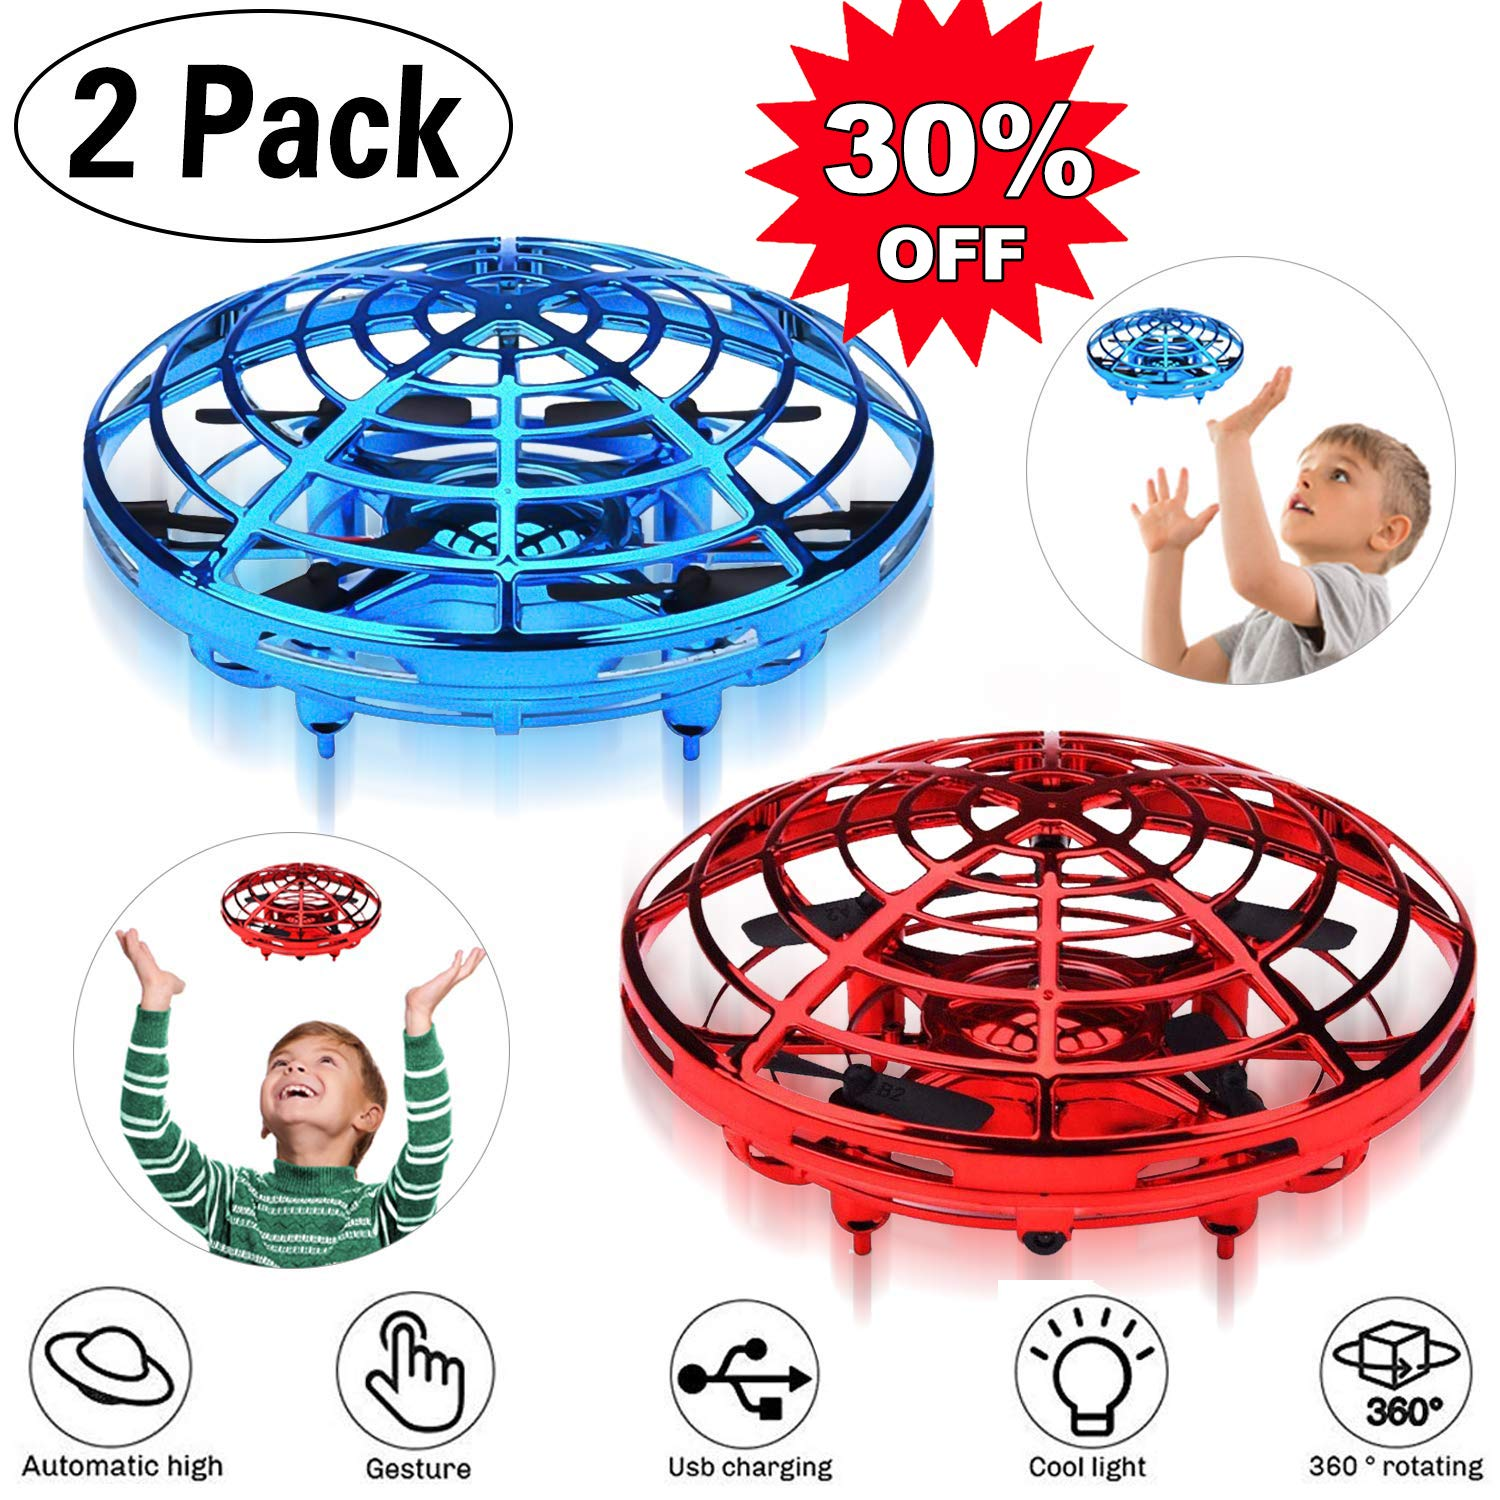 [2 PCS] Flying Ball, RC Flying Toy, 360°Rotating Hand Remote Mini Drone Controlled Quadcopter with 2 Speed Auto-Avoid Obstacles LED Light Infrared Induction Helicopter Kids Easter Gifts for Boys Girls